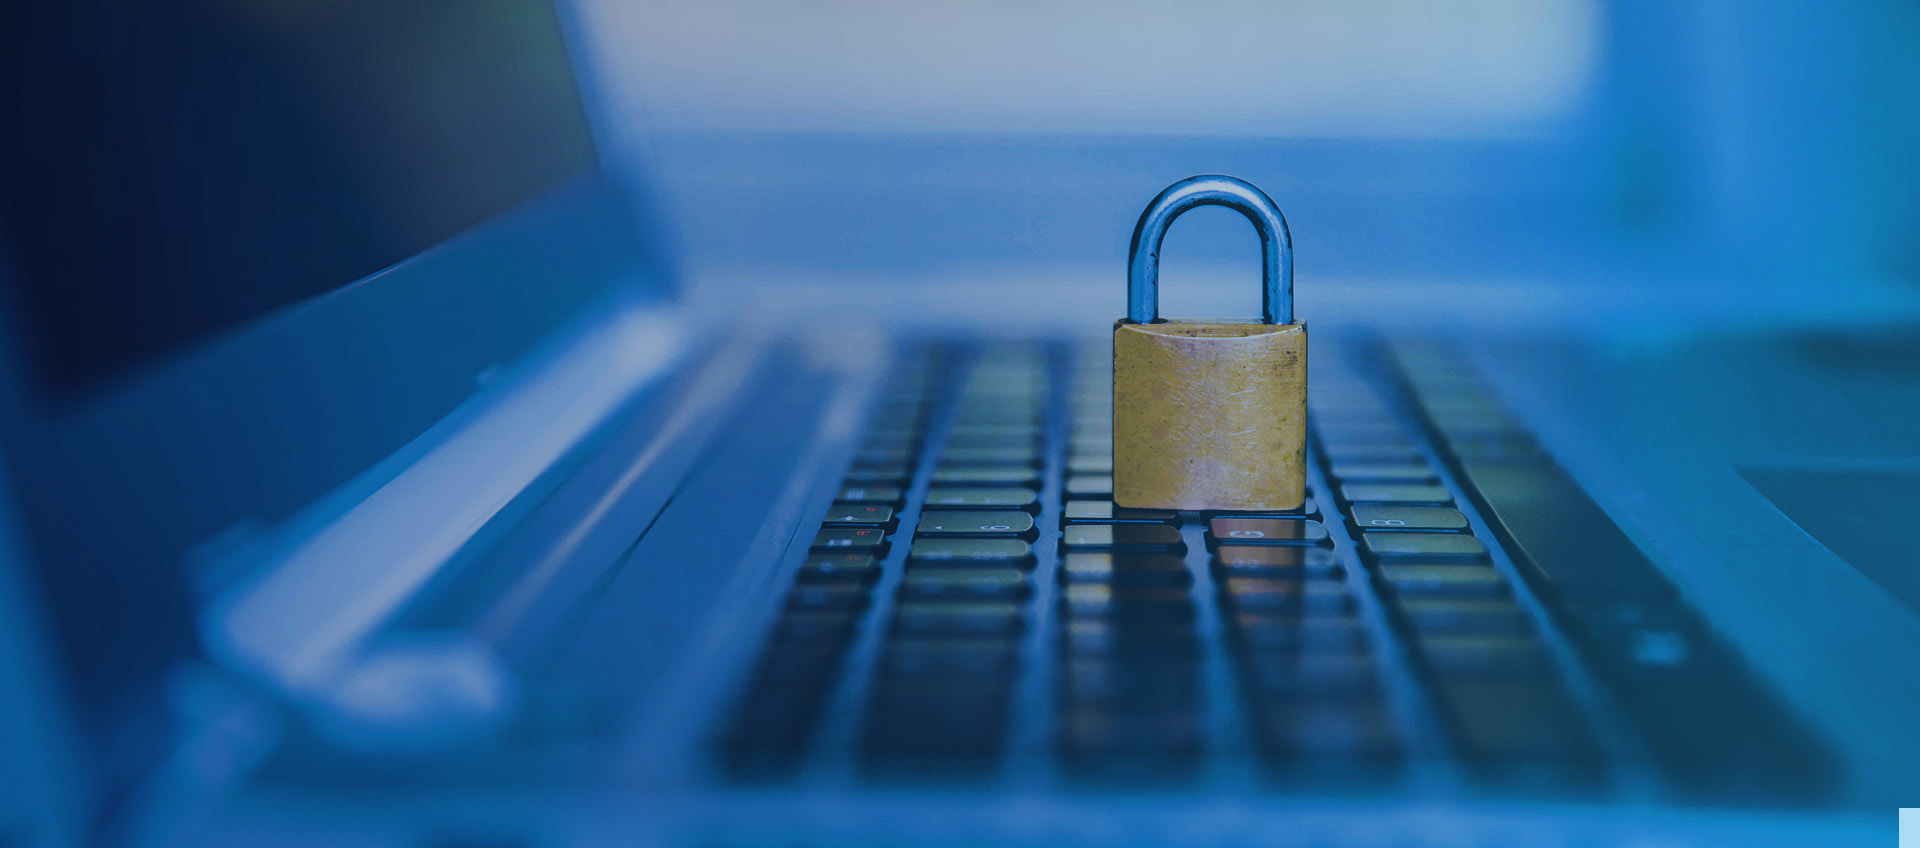 SAP GRC SAP Security, Cyber Protection, Data Privacy